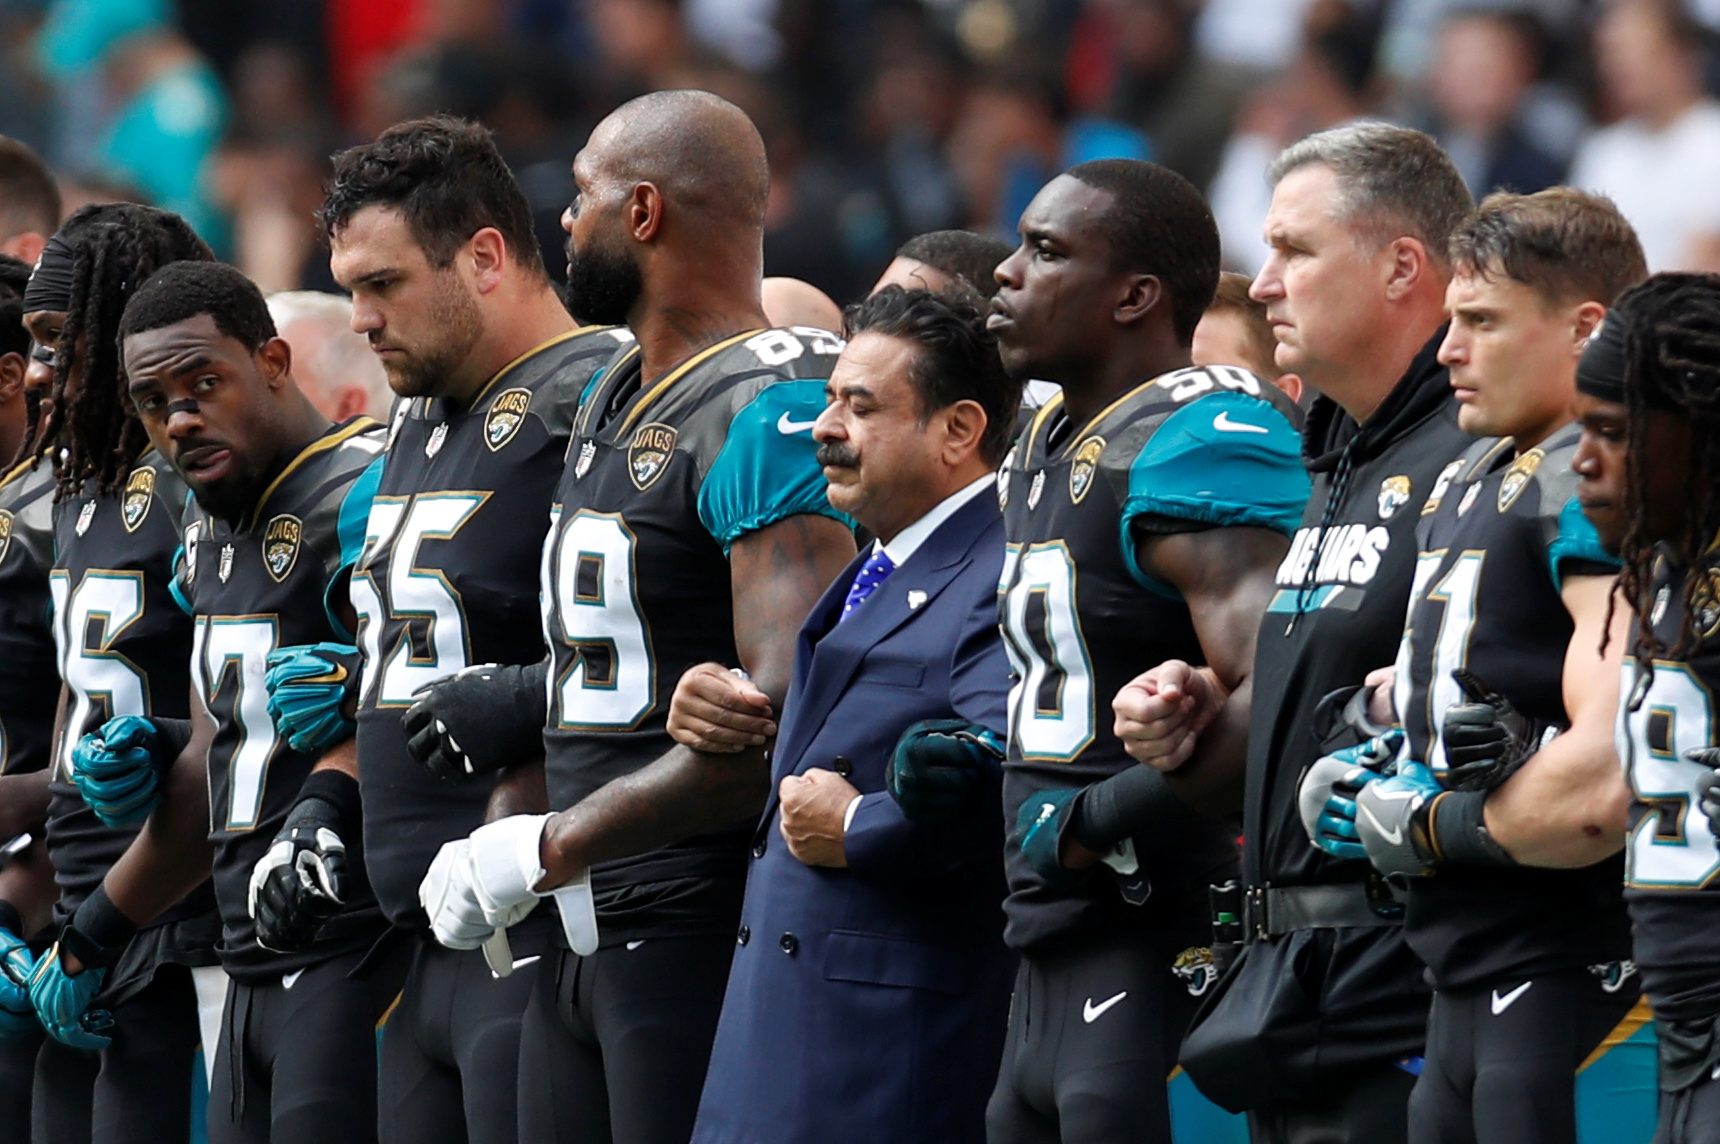 Jacksonville Jaguars owner Shahid Khan links arms with players during the national anthems before the match with Baltimore Ravens